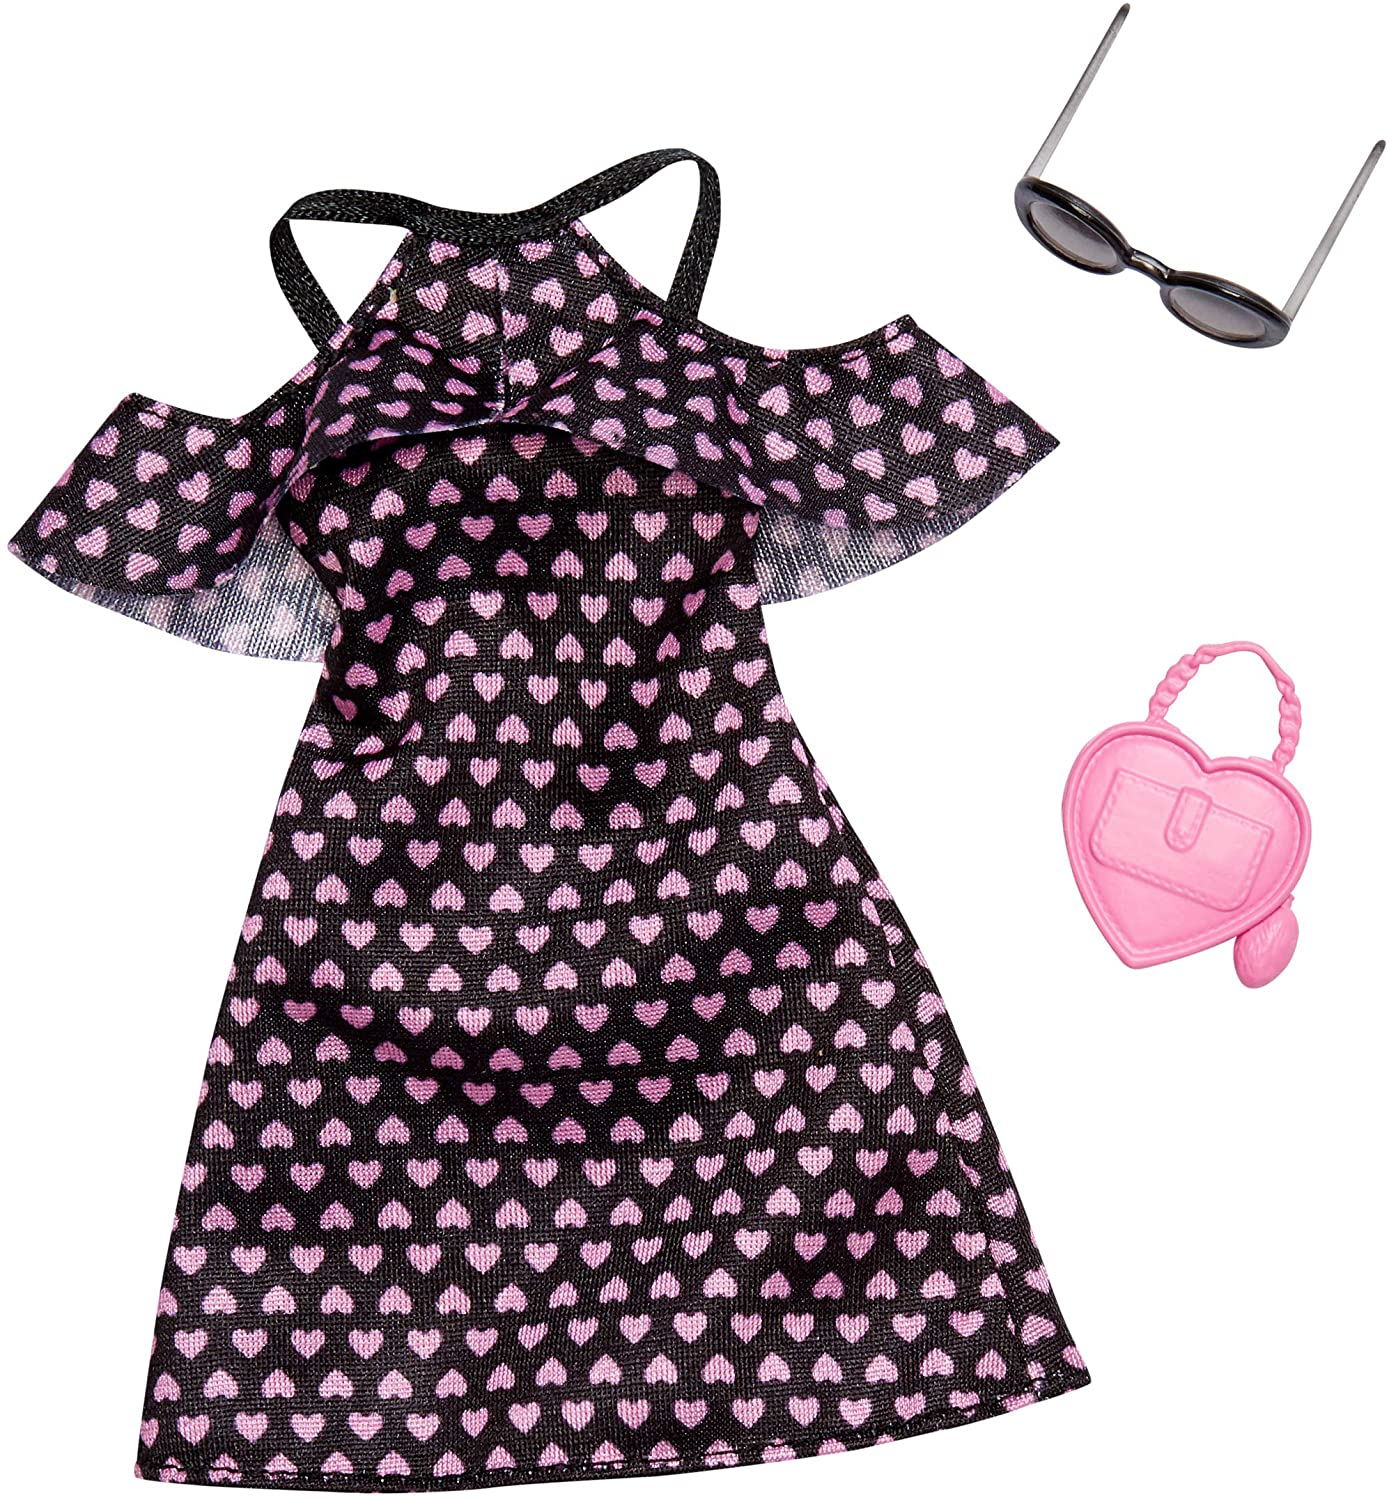 Barbie Over item handling ☆ Fashions Recommendation